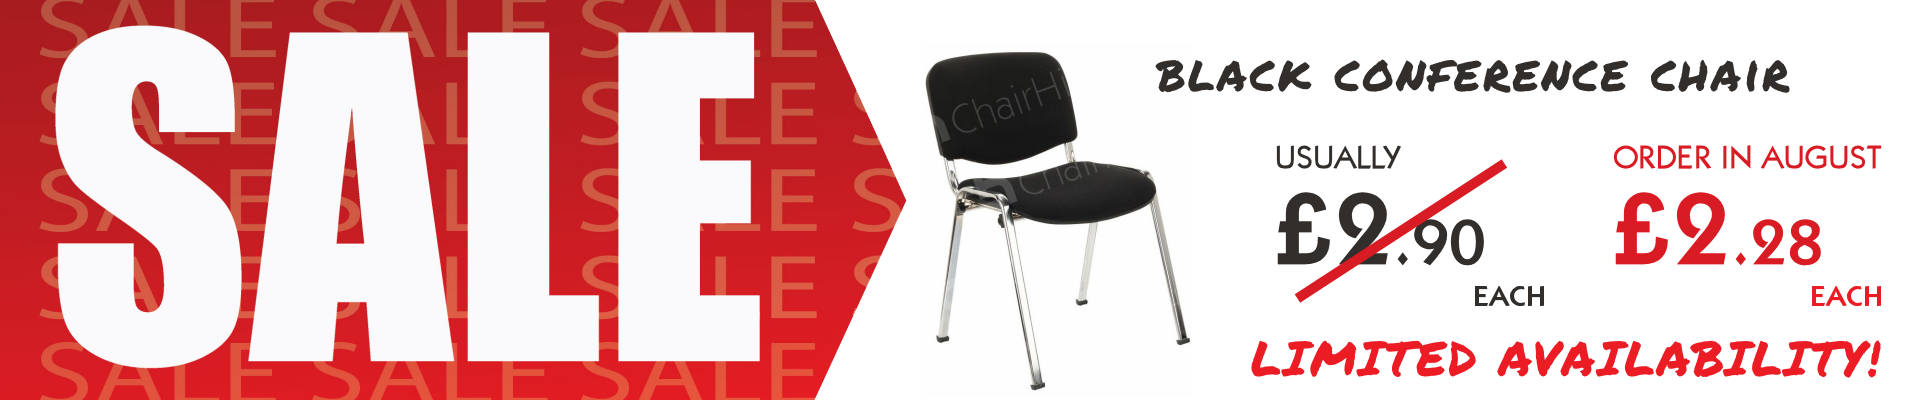 Black Conference Chair Sale